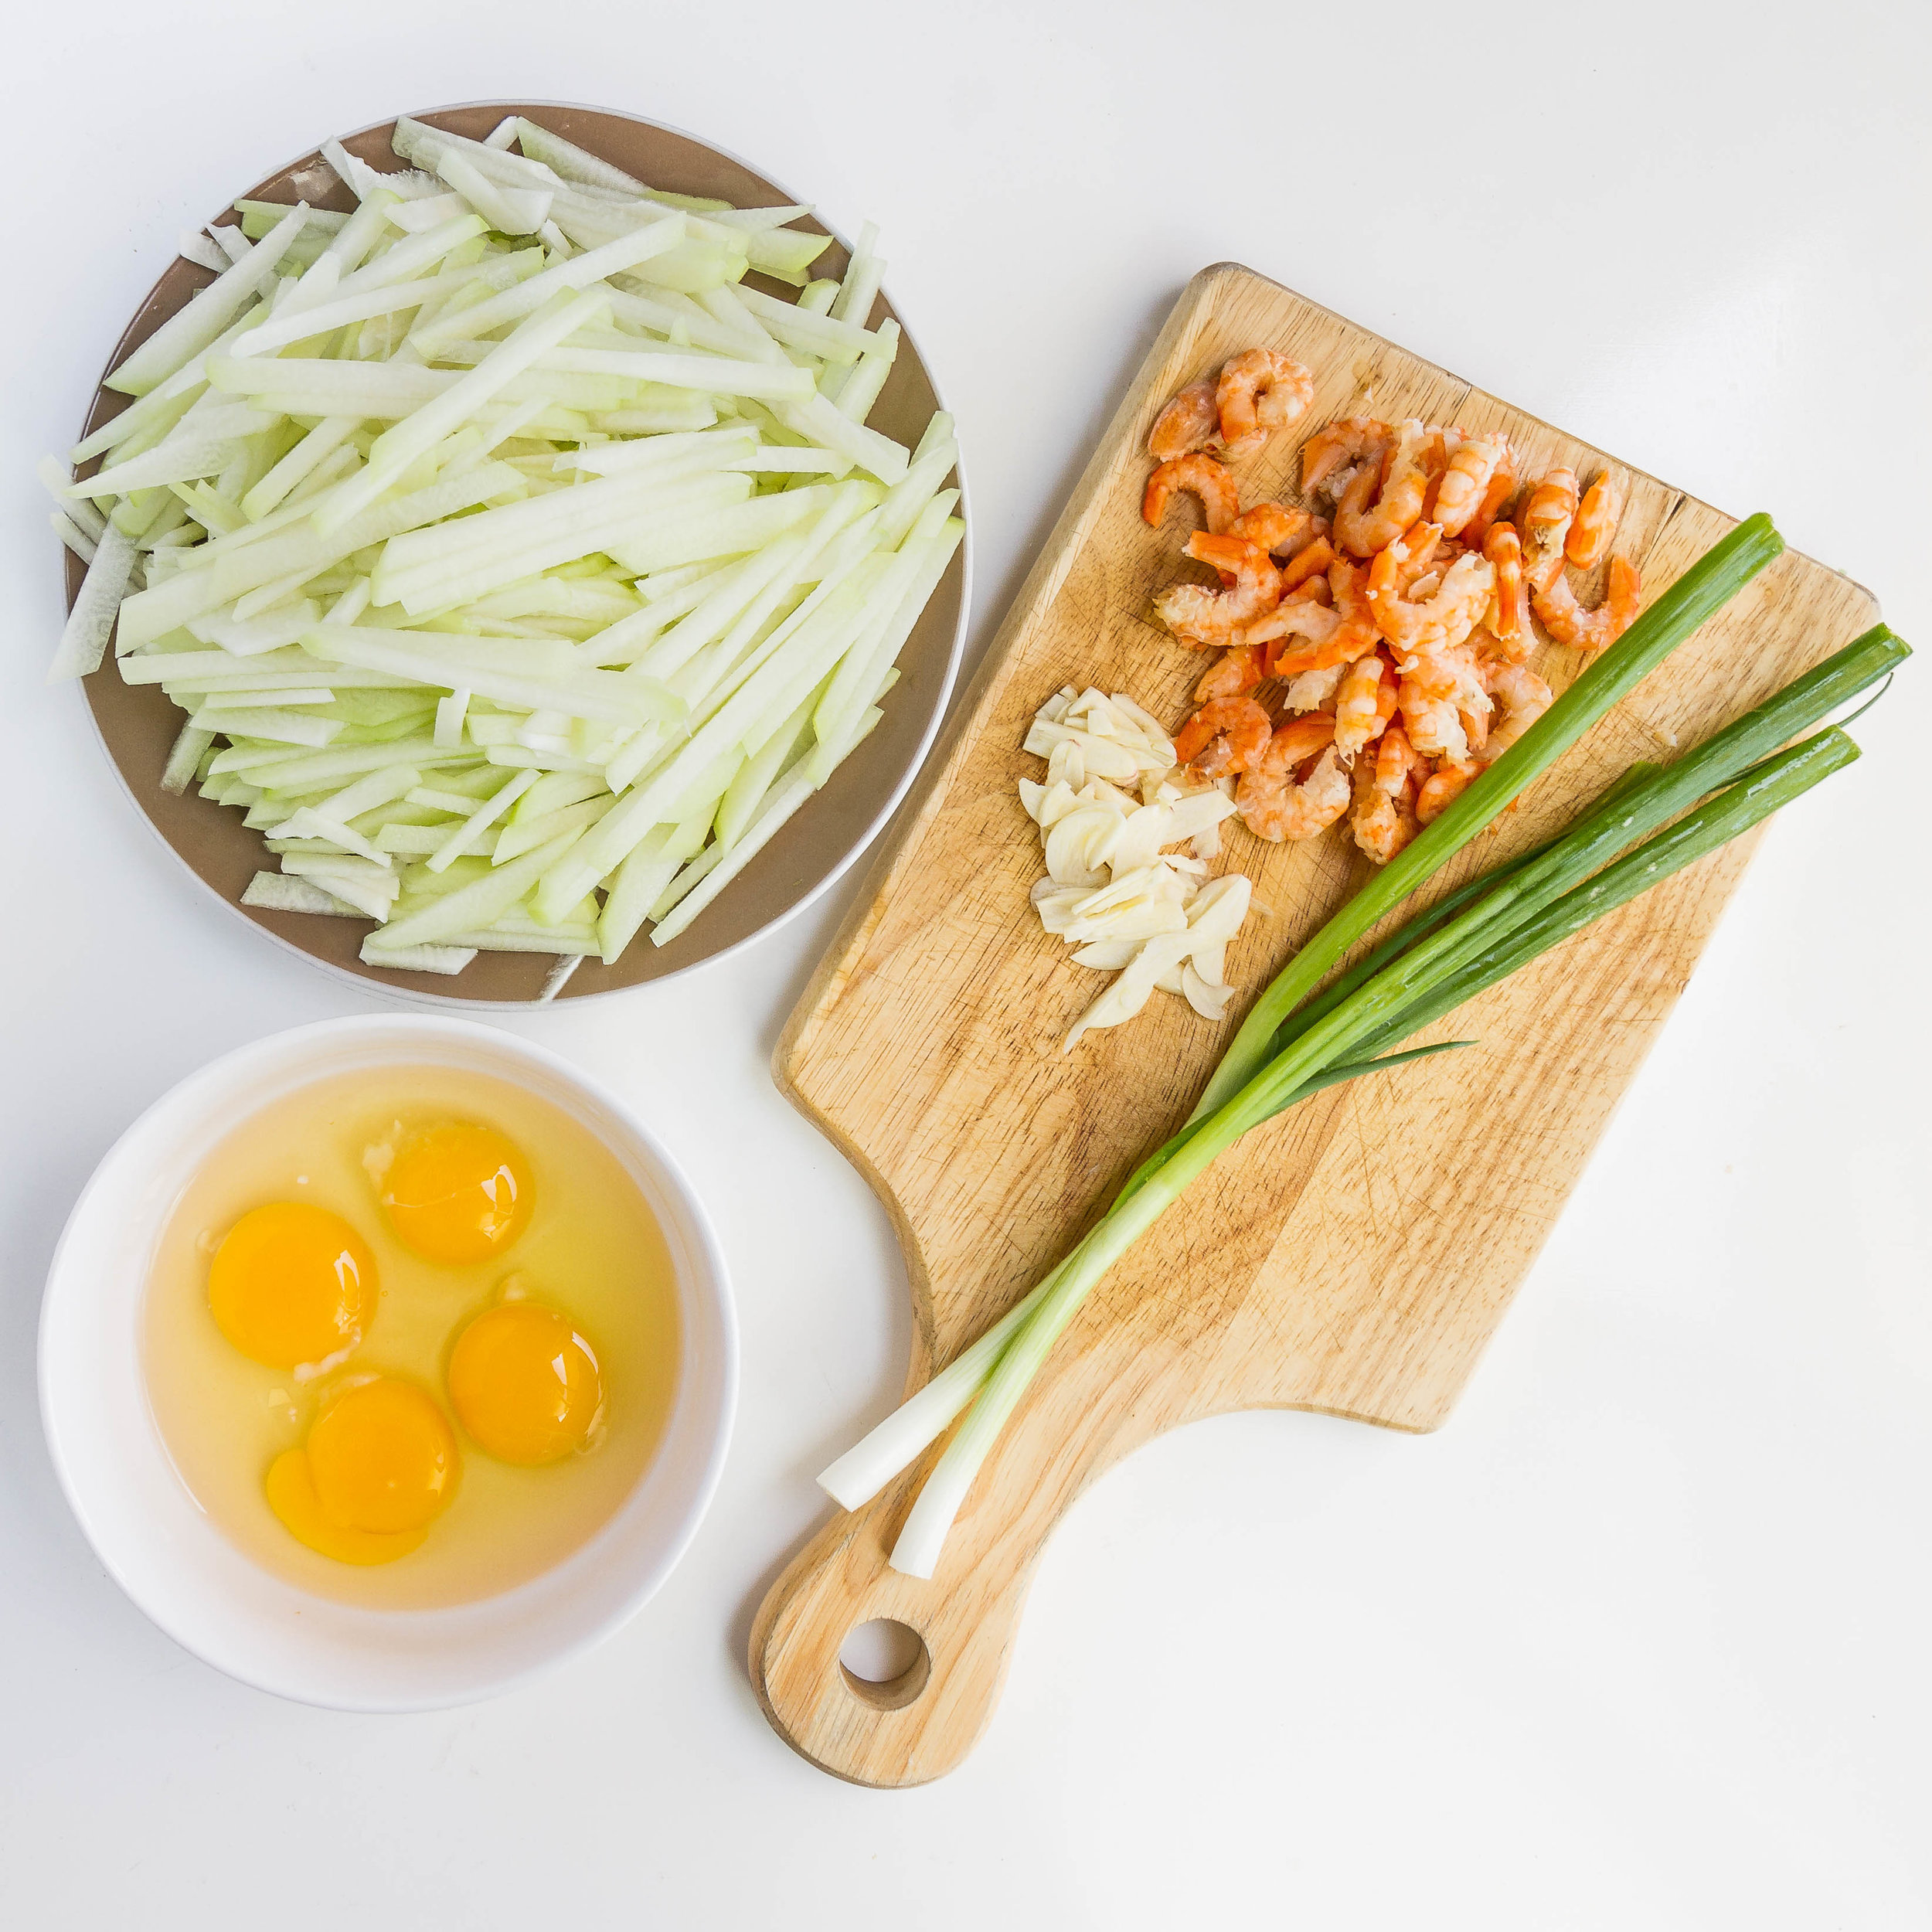 Vietnamese Chayote and Dried Shrimp Omelette (Trung Chien Su Su Tom Kho)